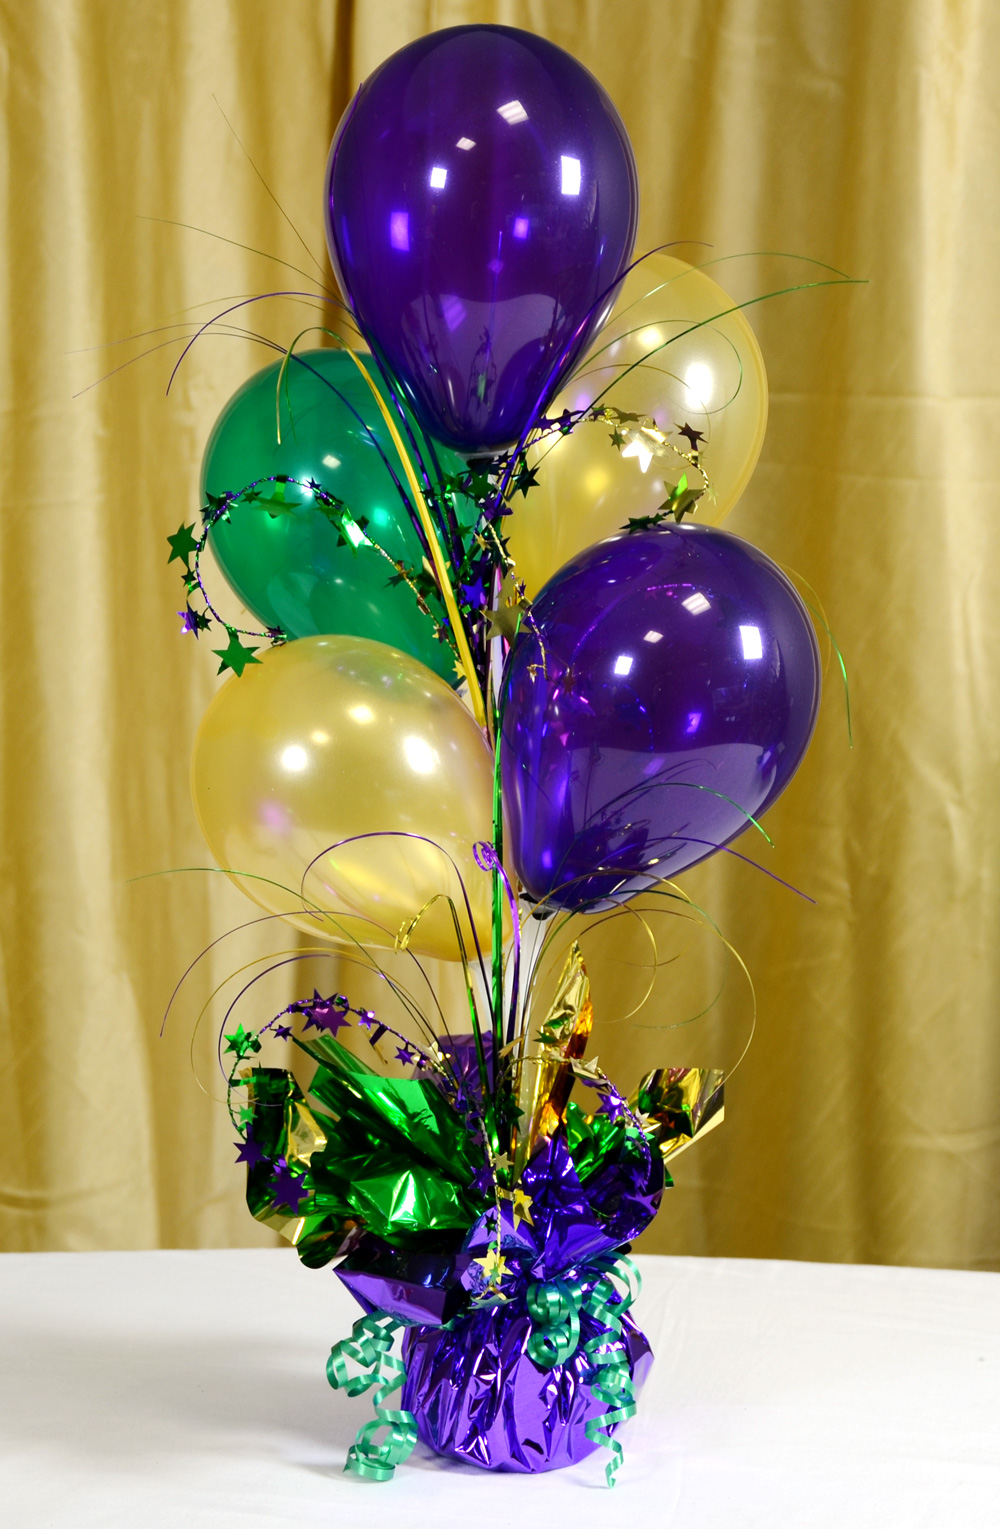 Mardi gras balloon decorations party favors ideas for Ballom decoration